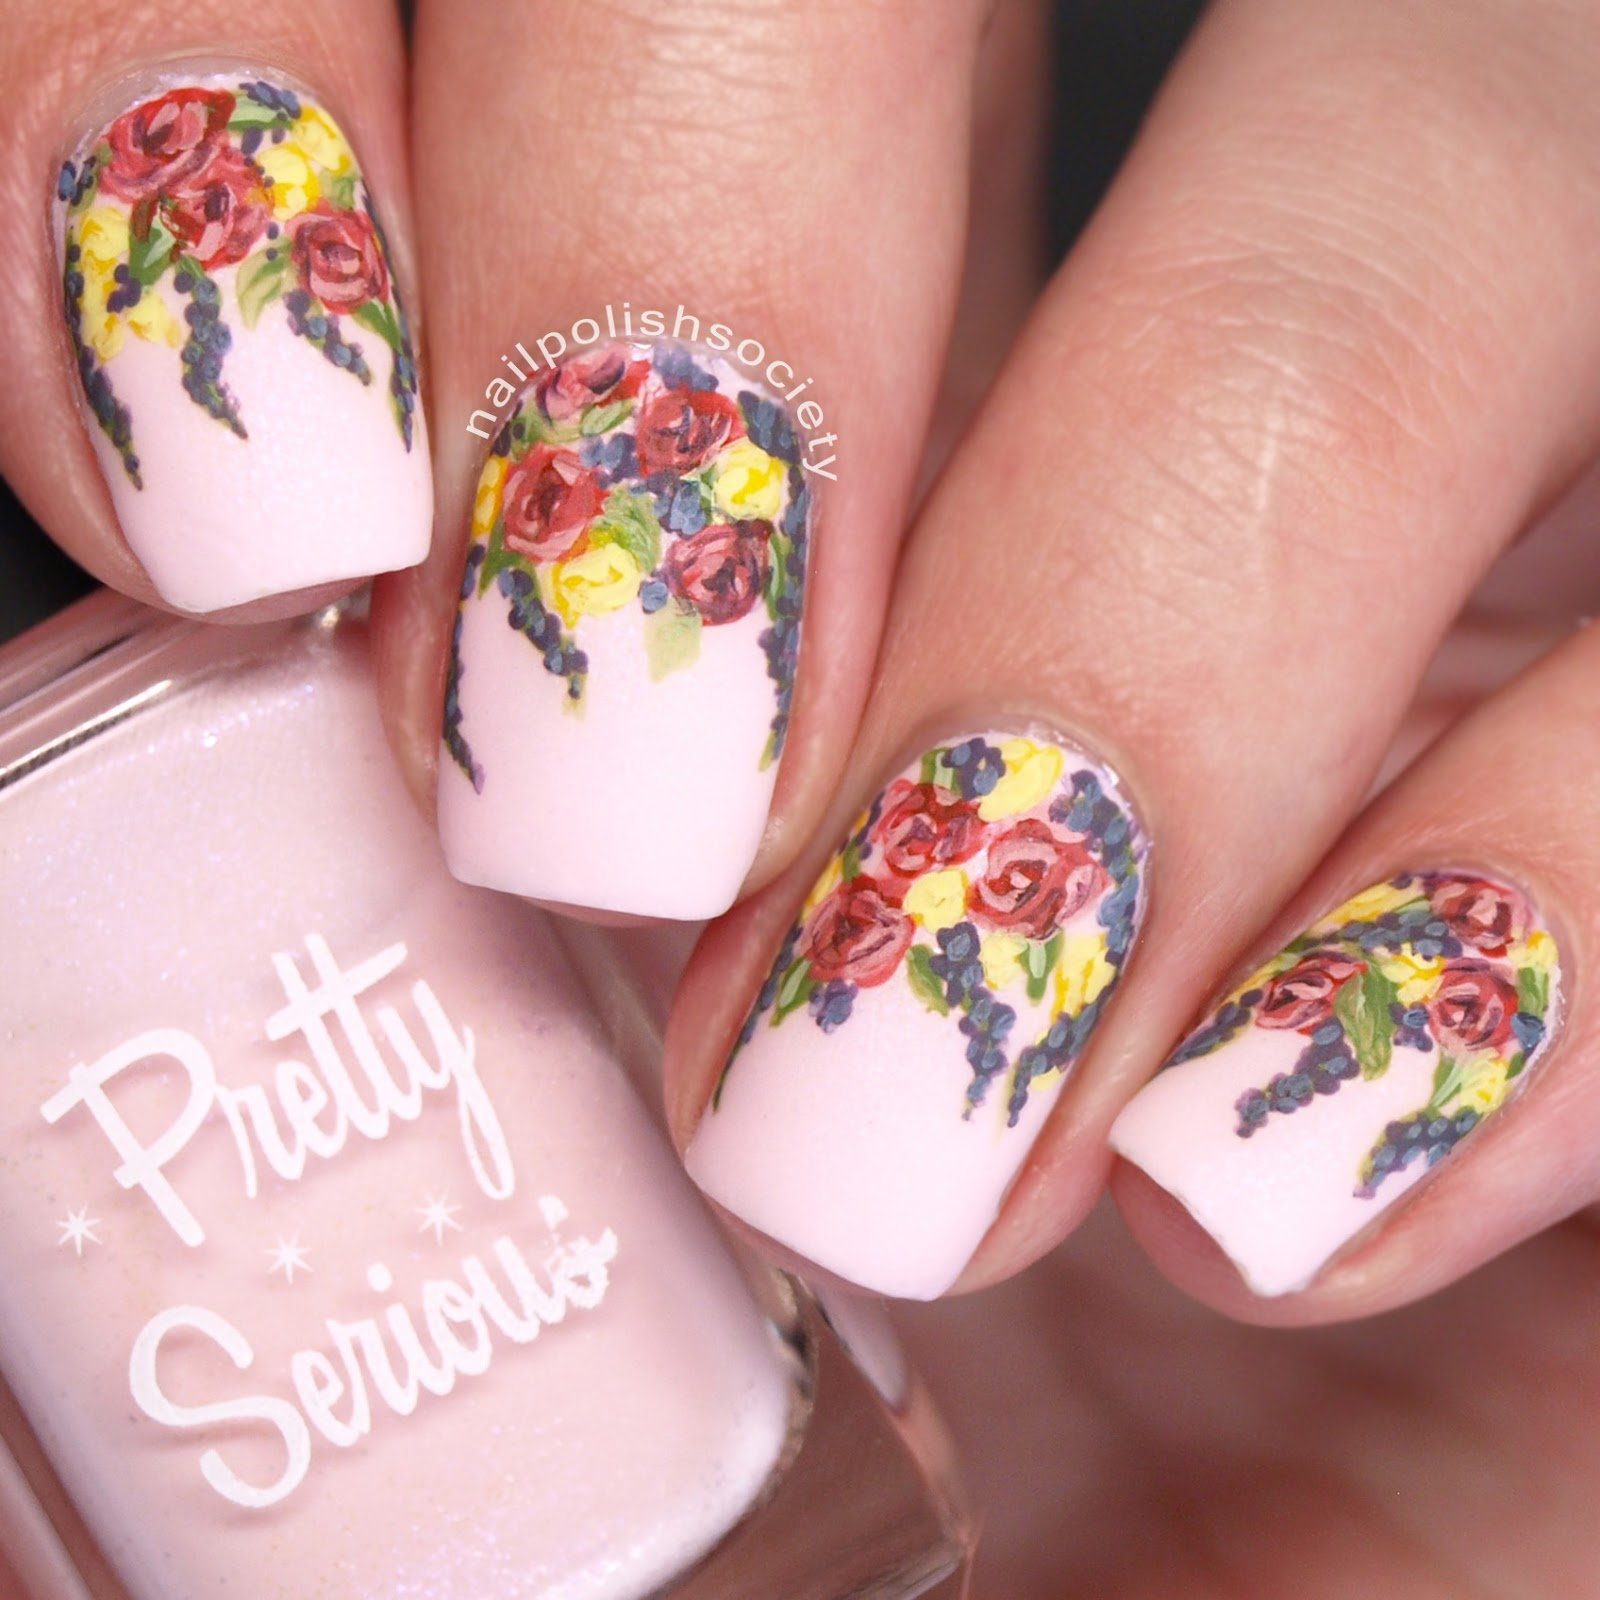 Nail Polish Society: ABC Challenge: P is for Paint